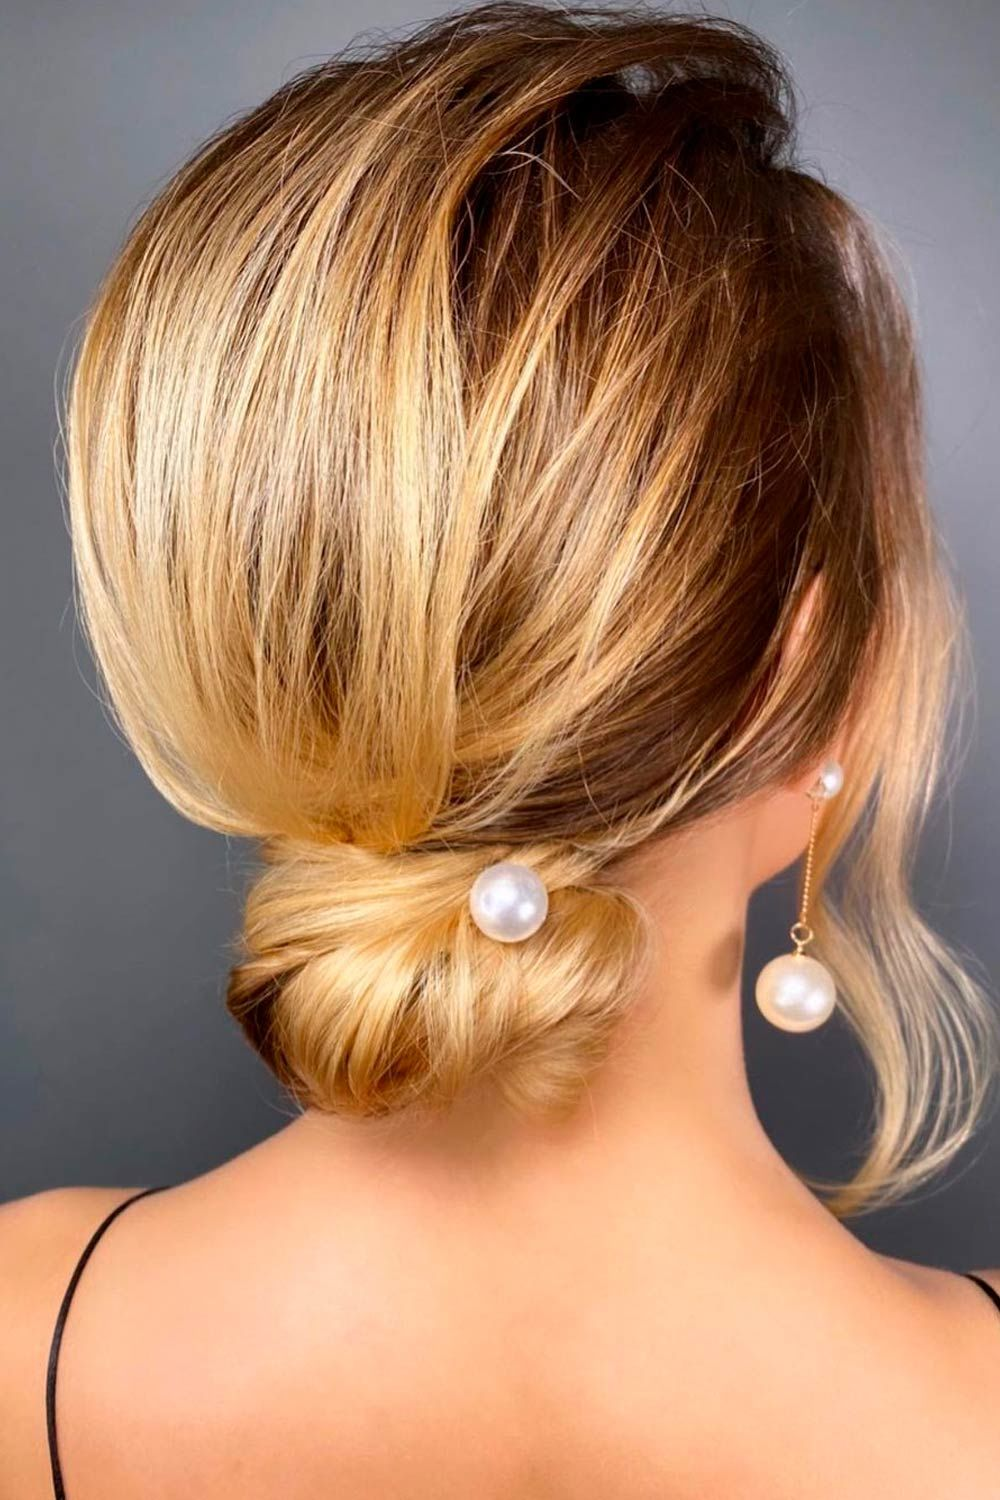 Updo Hairstyles With Accessories for Christmas Party